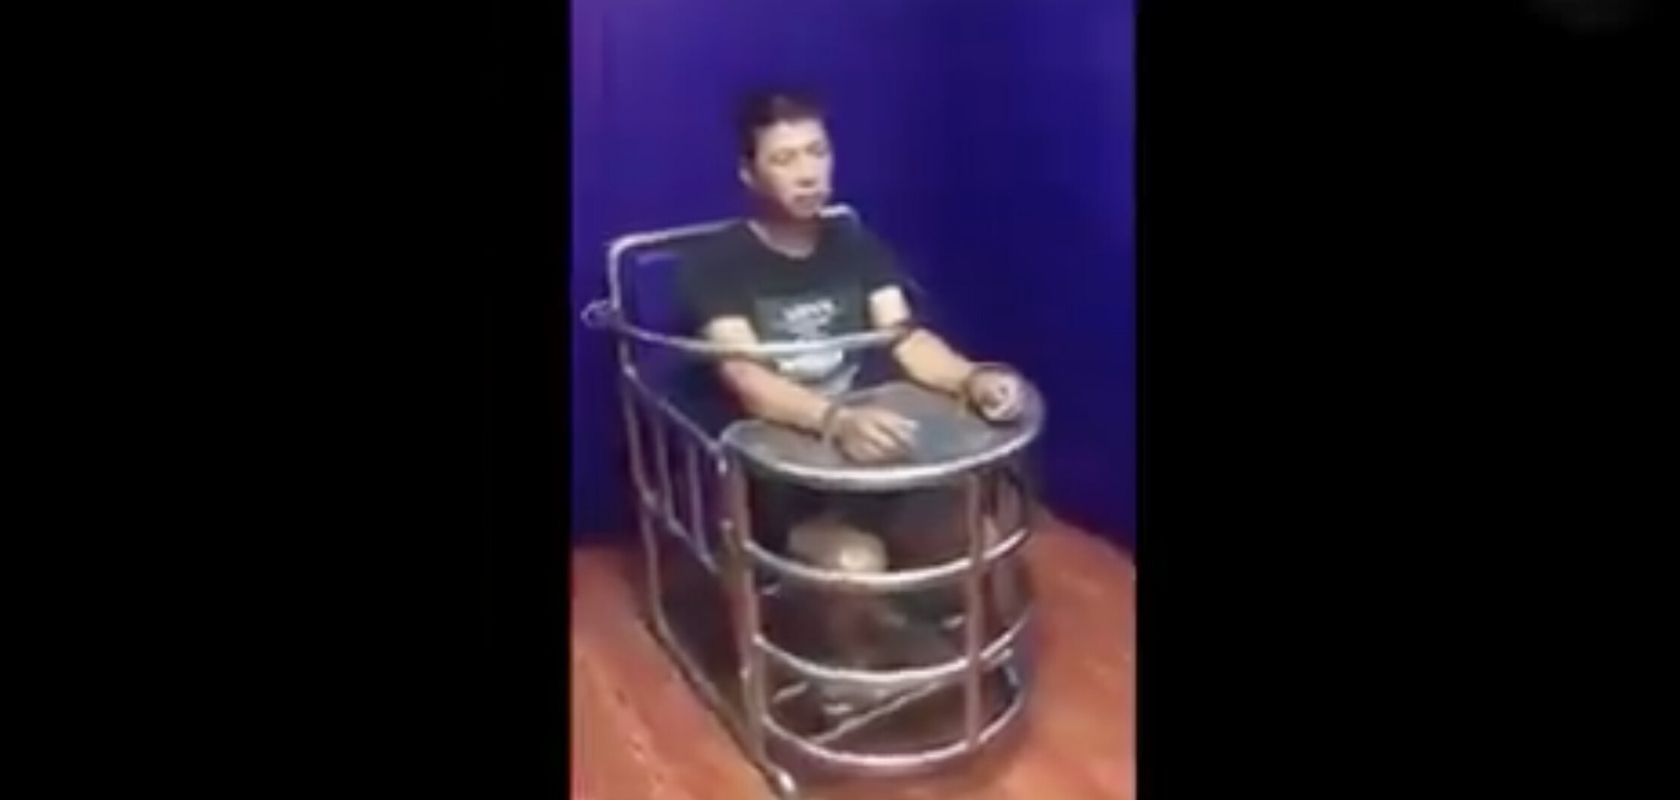 Viral video of Chinese man interrogation reminds the West of the horrors of the Chinese Social Credit system